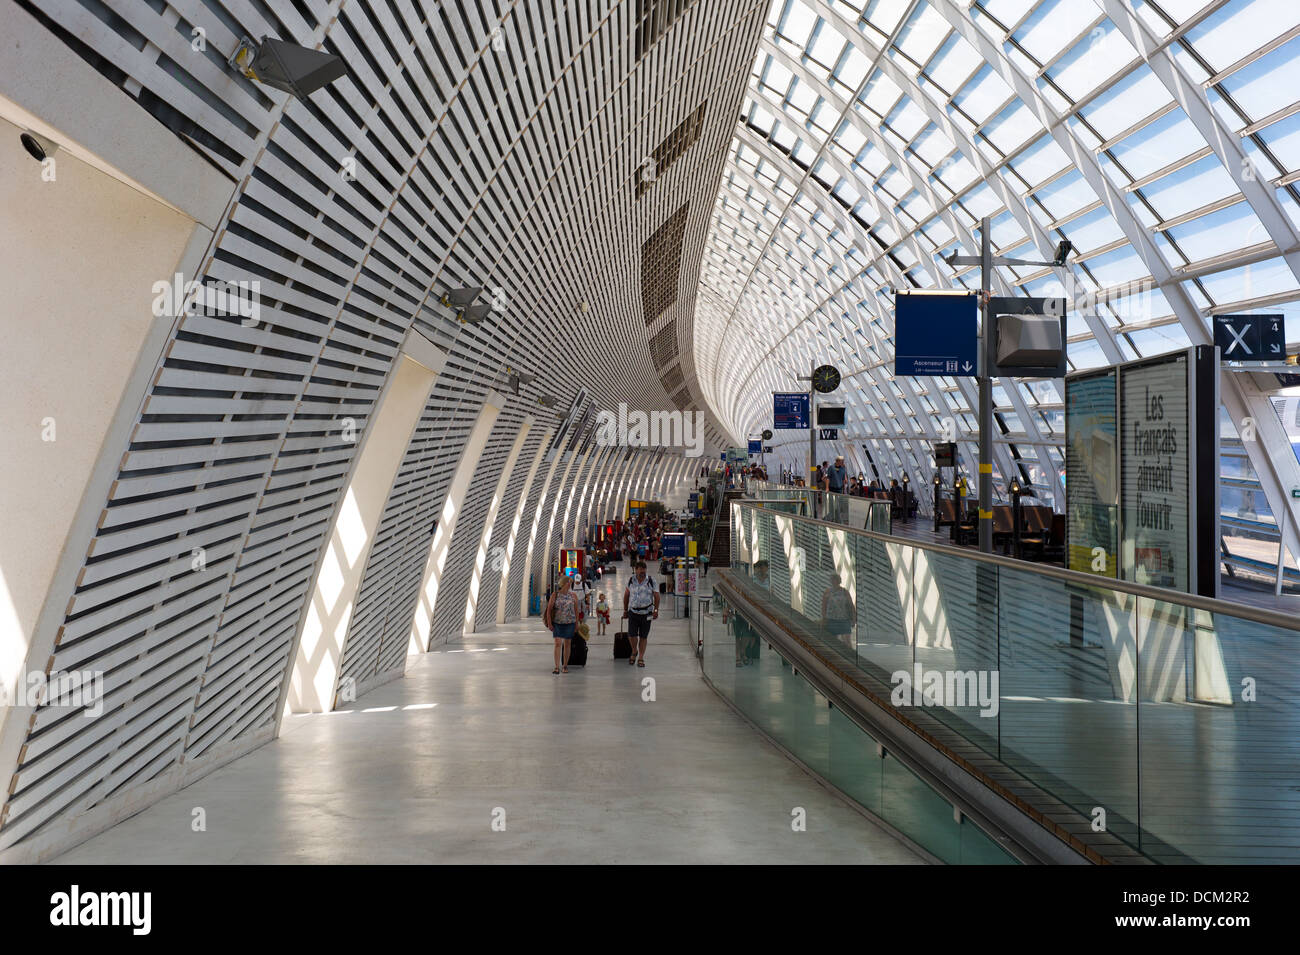 Gare D Avignon Tgv This Station Was Opened In 2001 Was Designed By Stock Photo Alamy